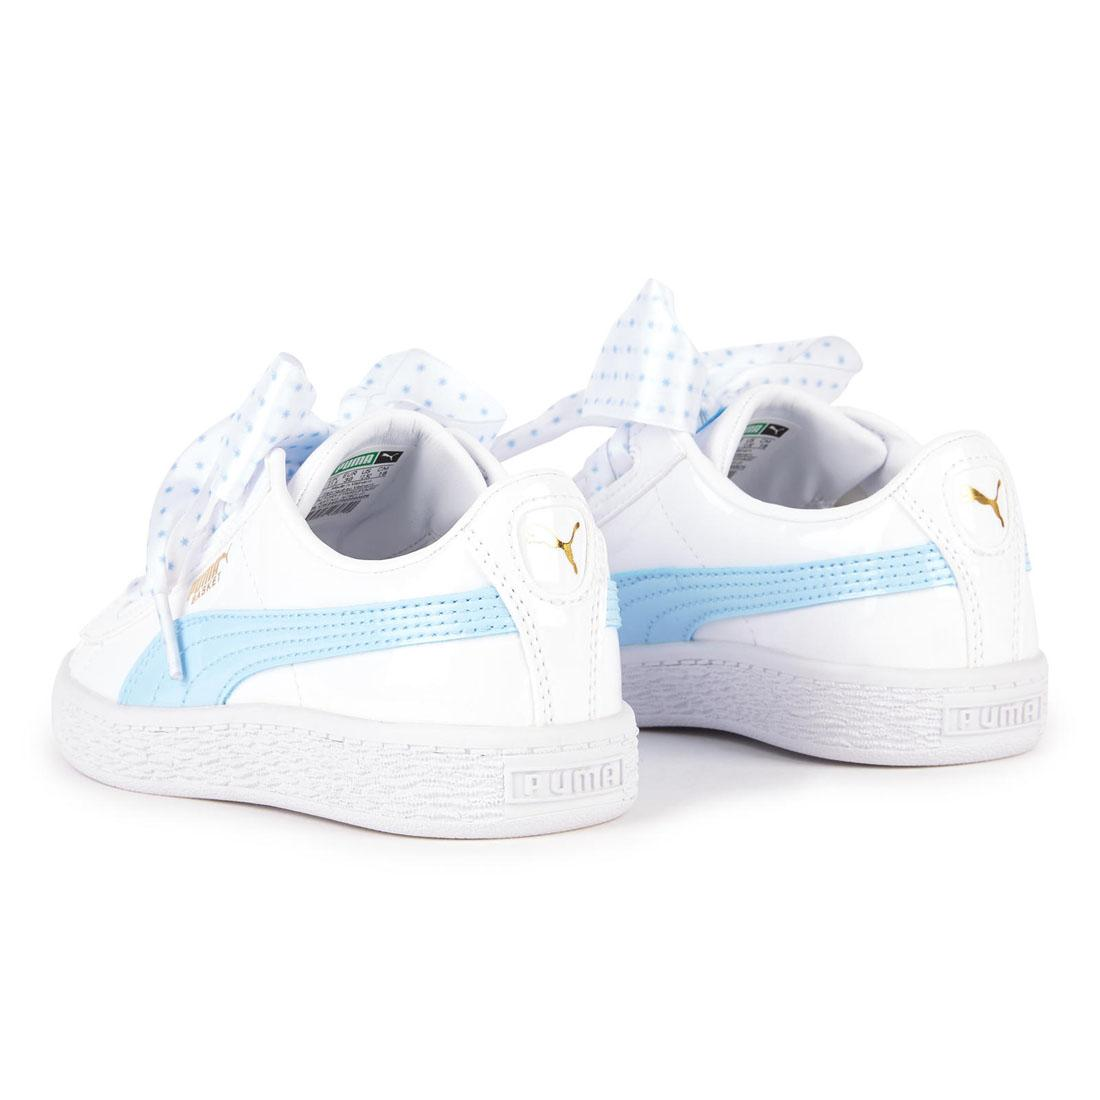 PUMA Basket Heart Stars Bow Childrens Trainers Kids Pink White Blue Girls Shoes